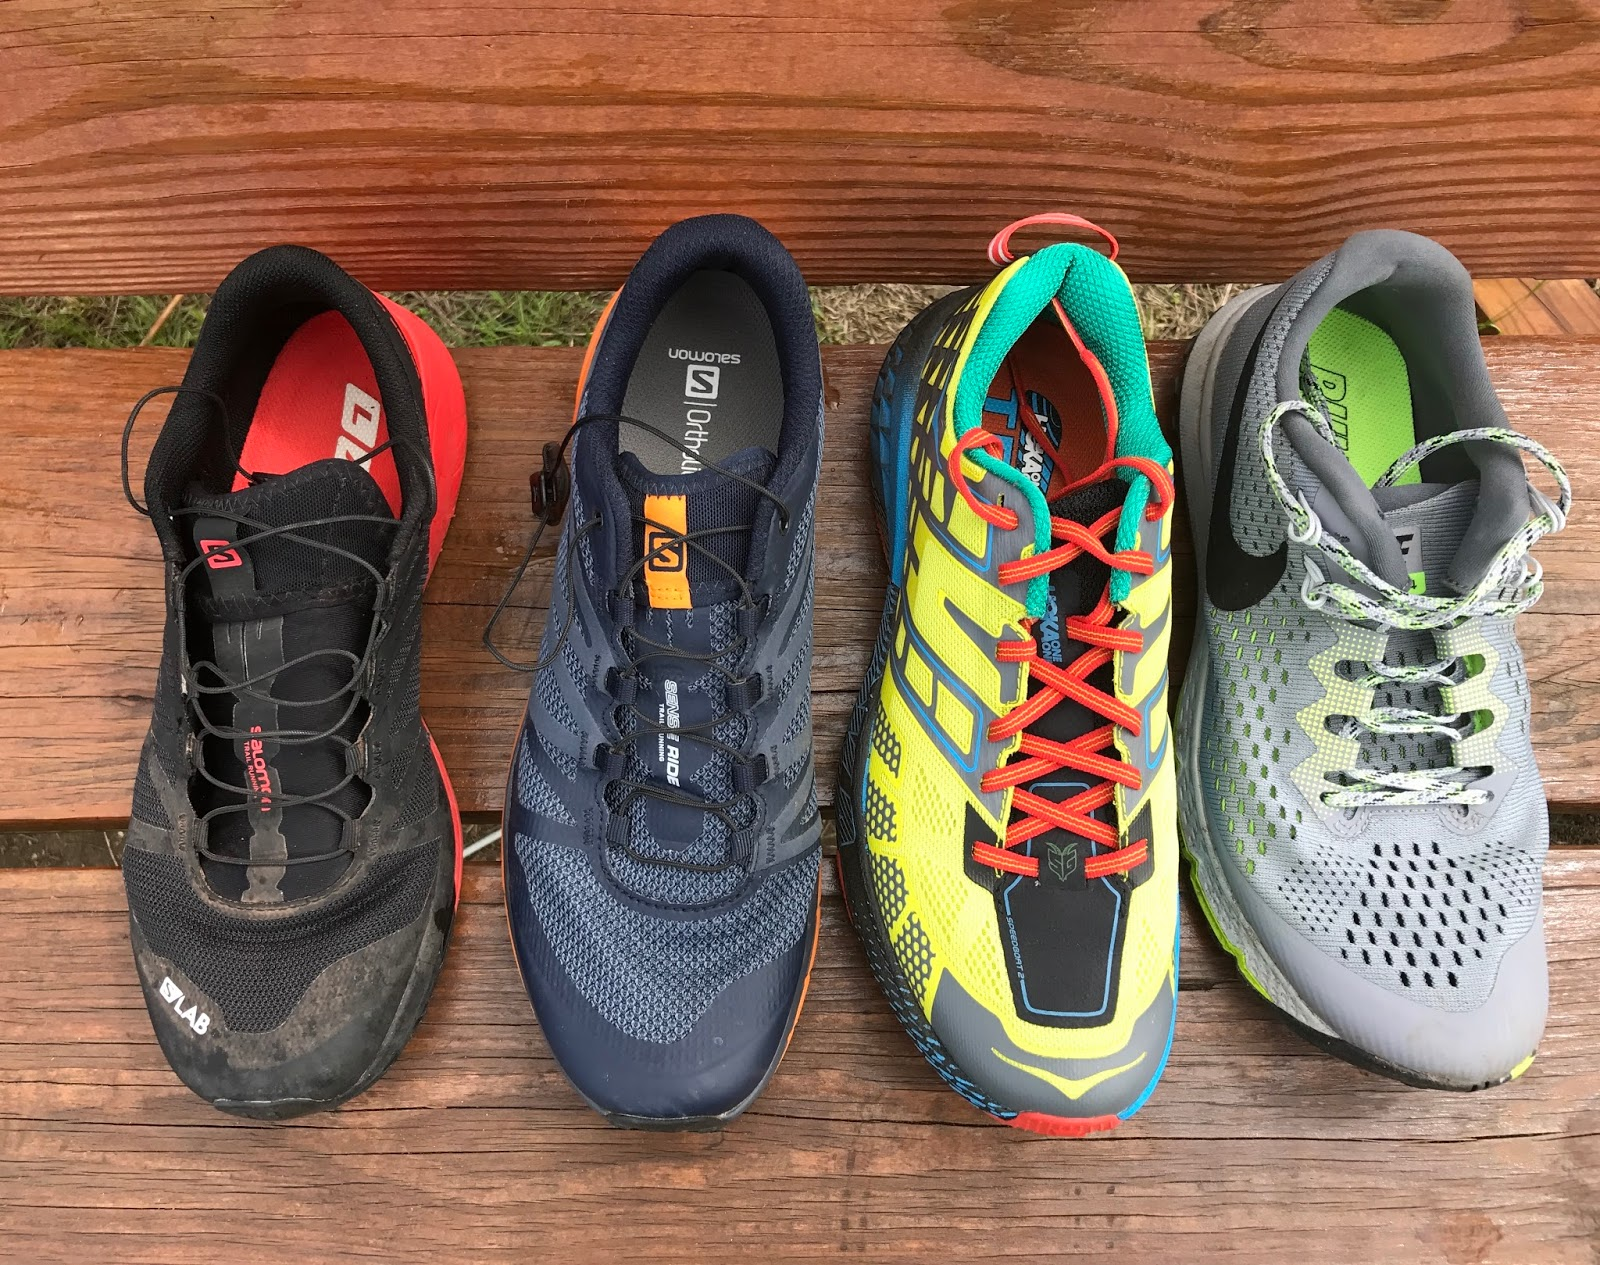 c562acefbf30 australia salomon s lab sense ultra salomon sense ride hoka one one  speedgoat 2 nike air